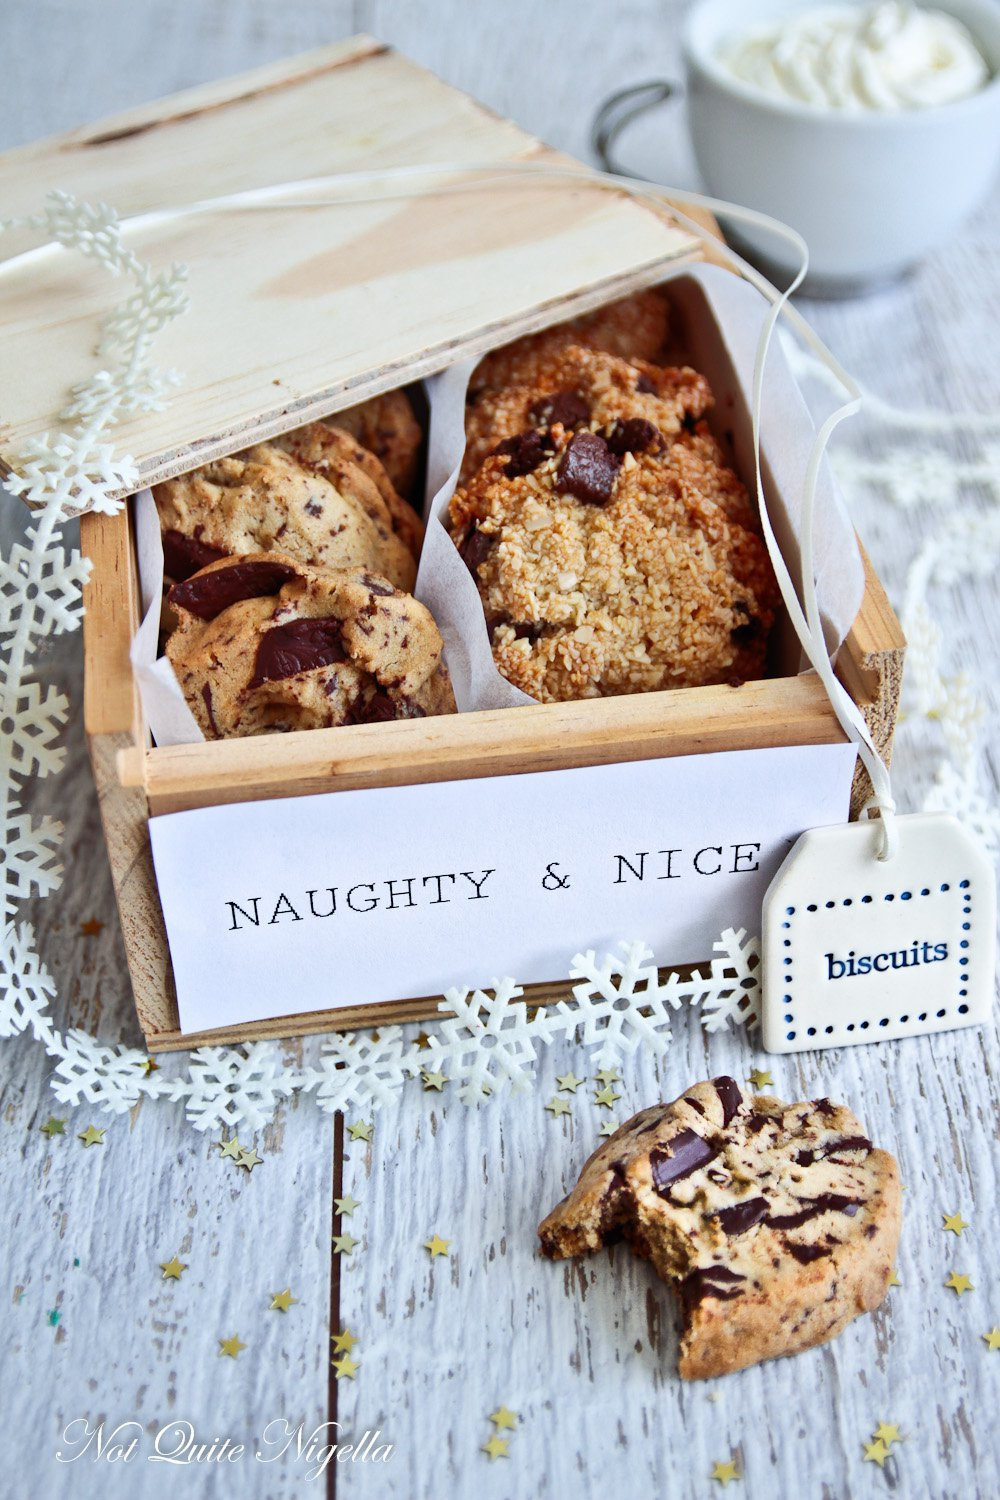 Naughty and Nice cookies from Not Quite Nigella